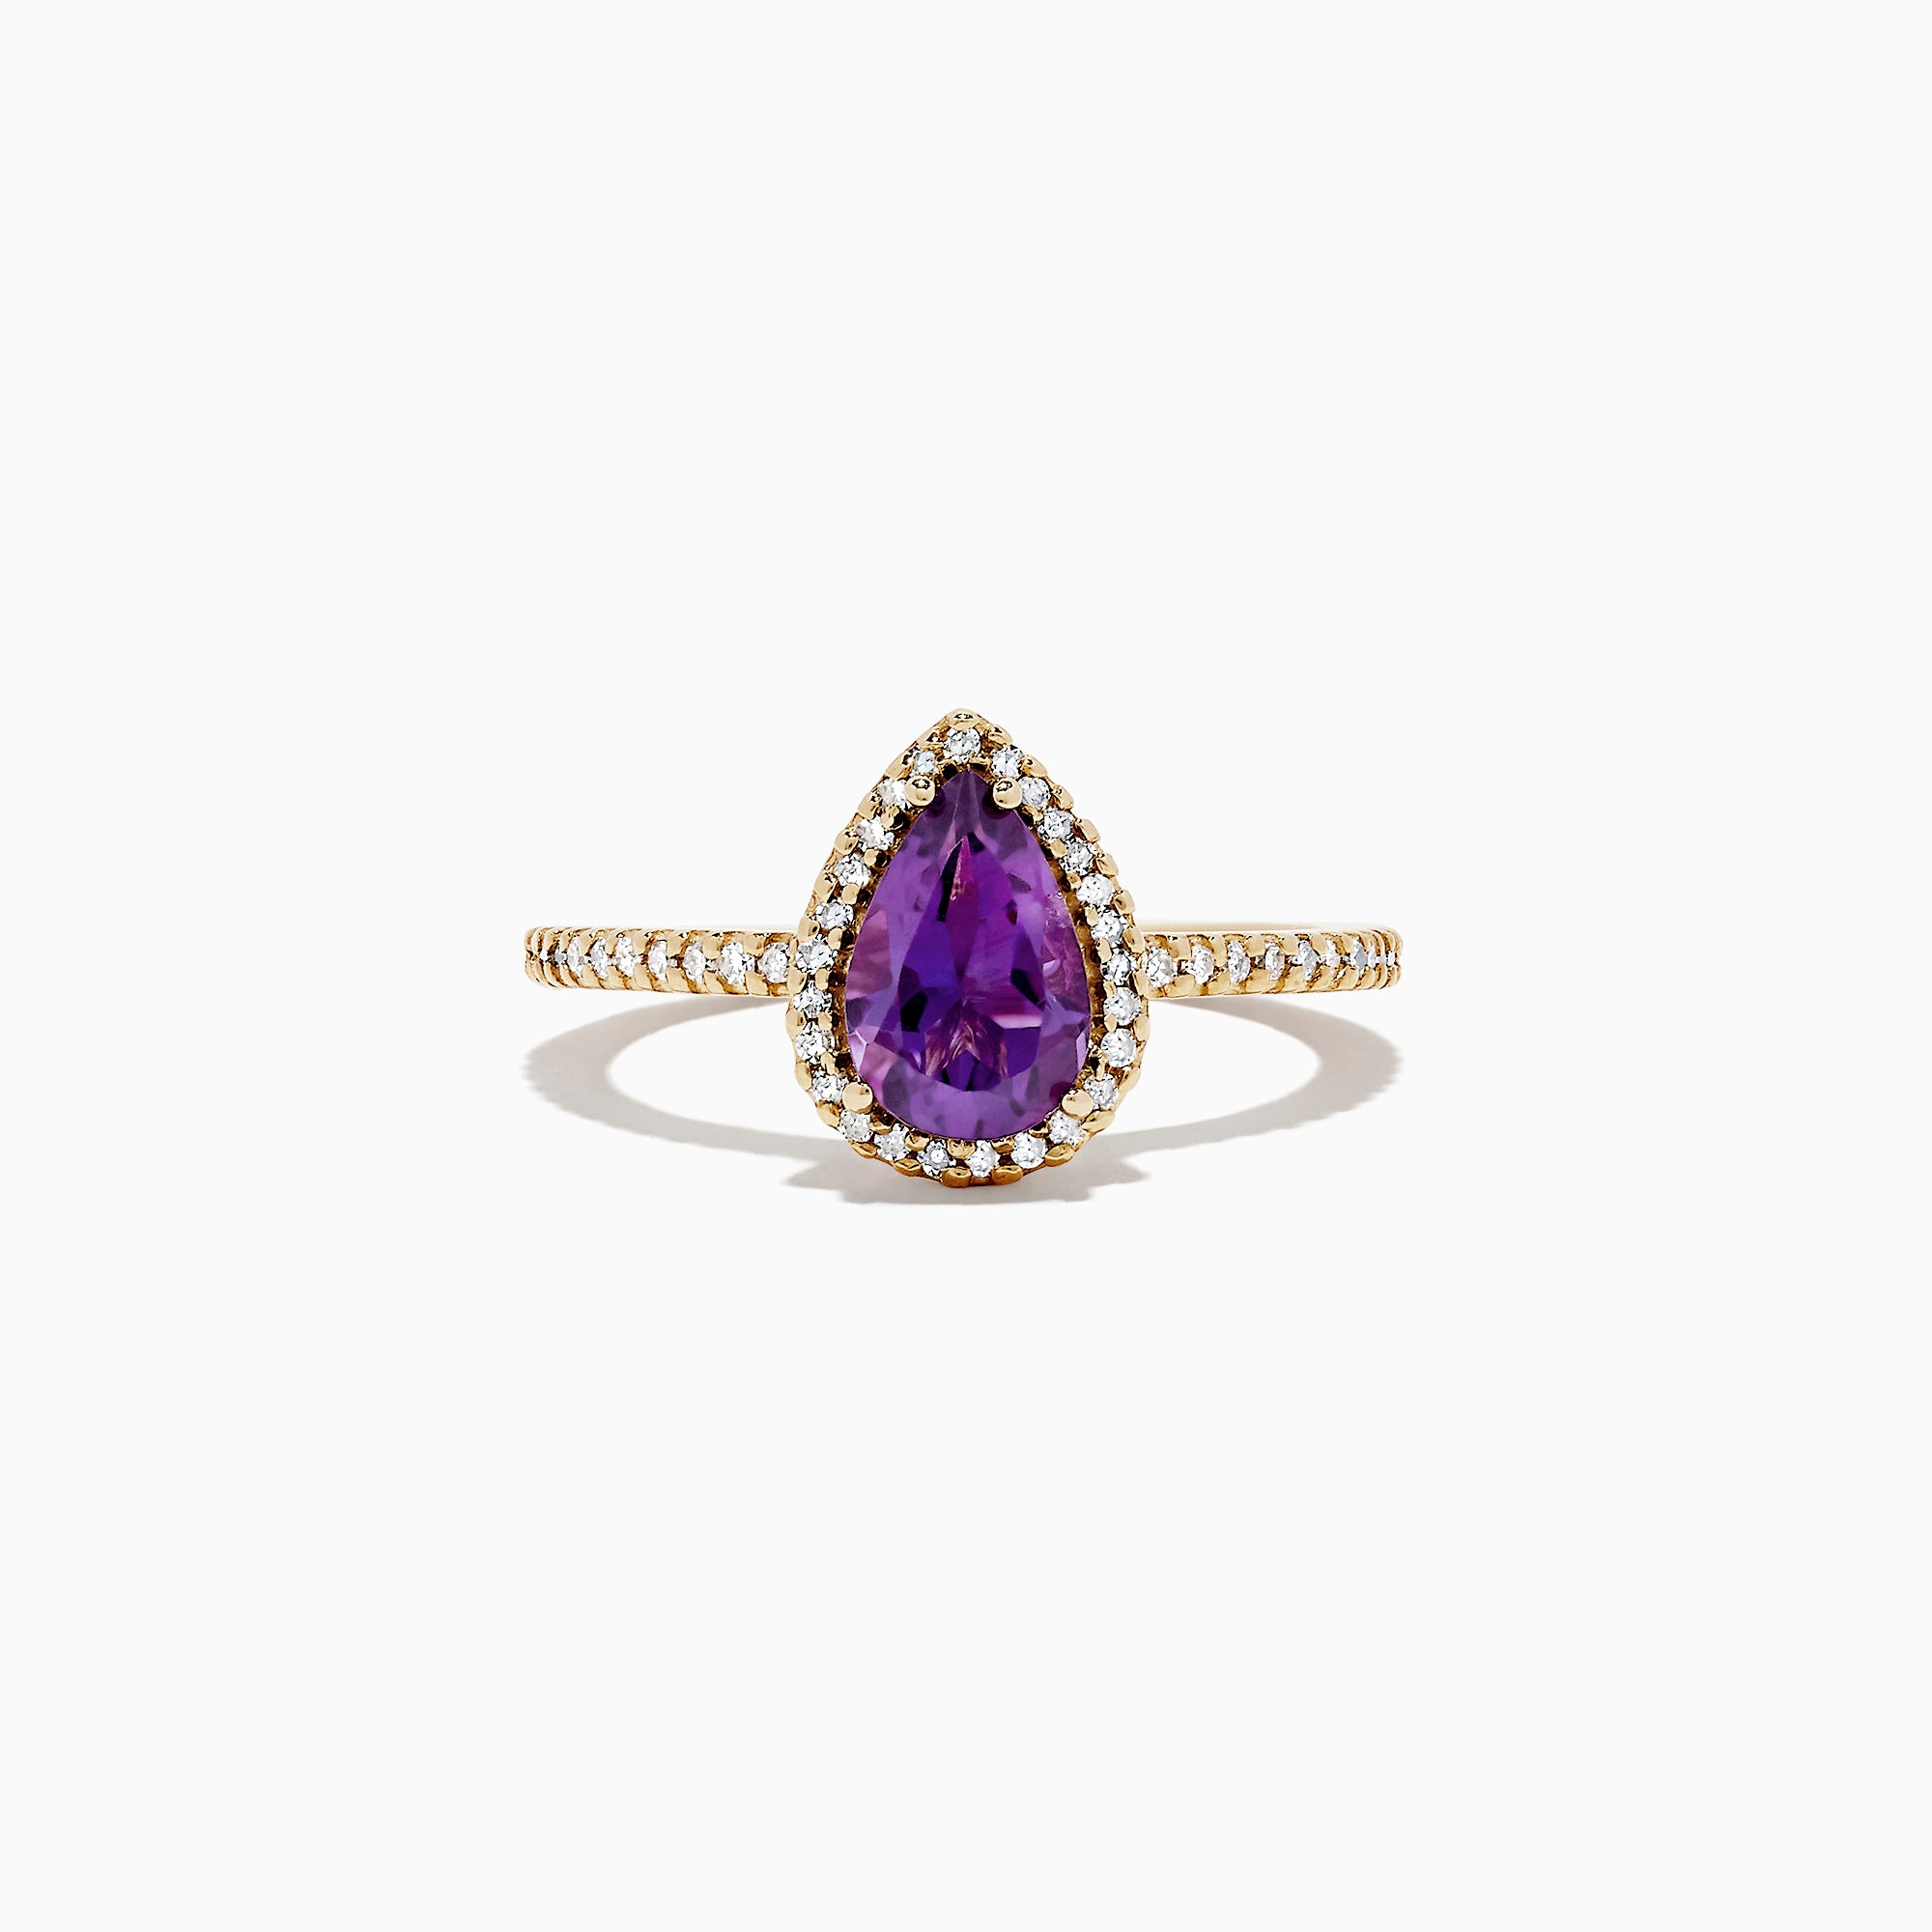 Effy 14K Yellow Gold Pear Shaped Amethyst and Diamond Ring, 1.41 TCW